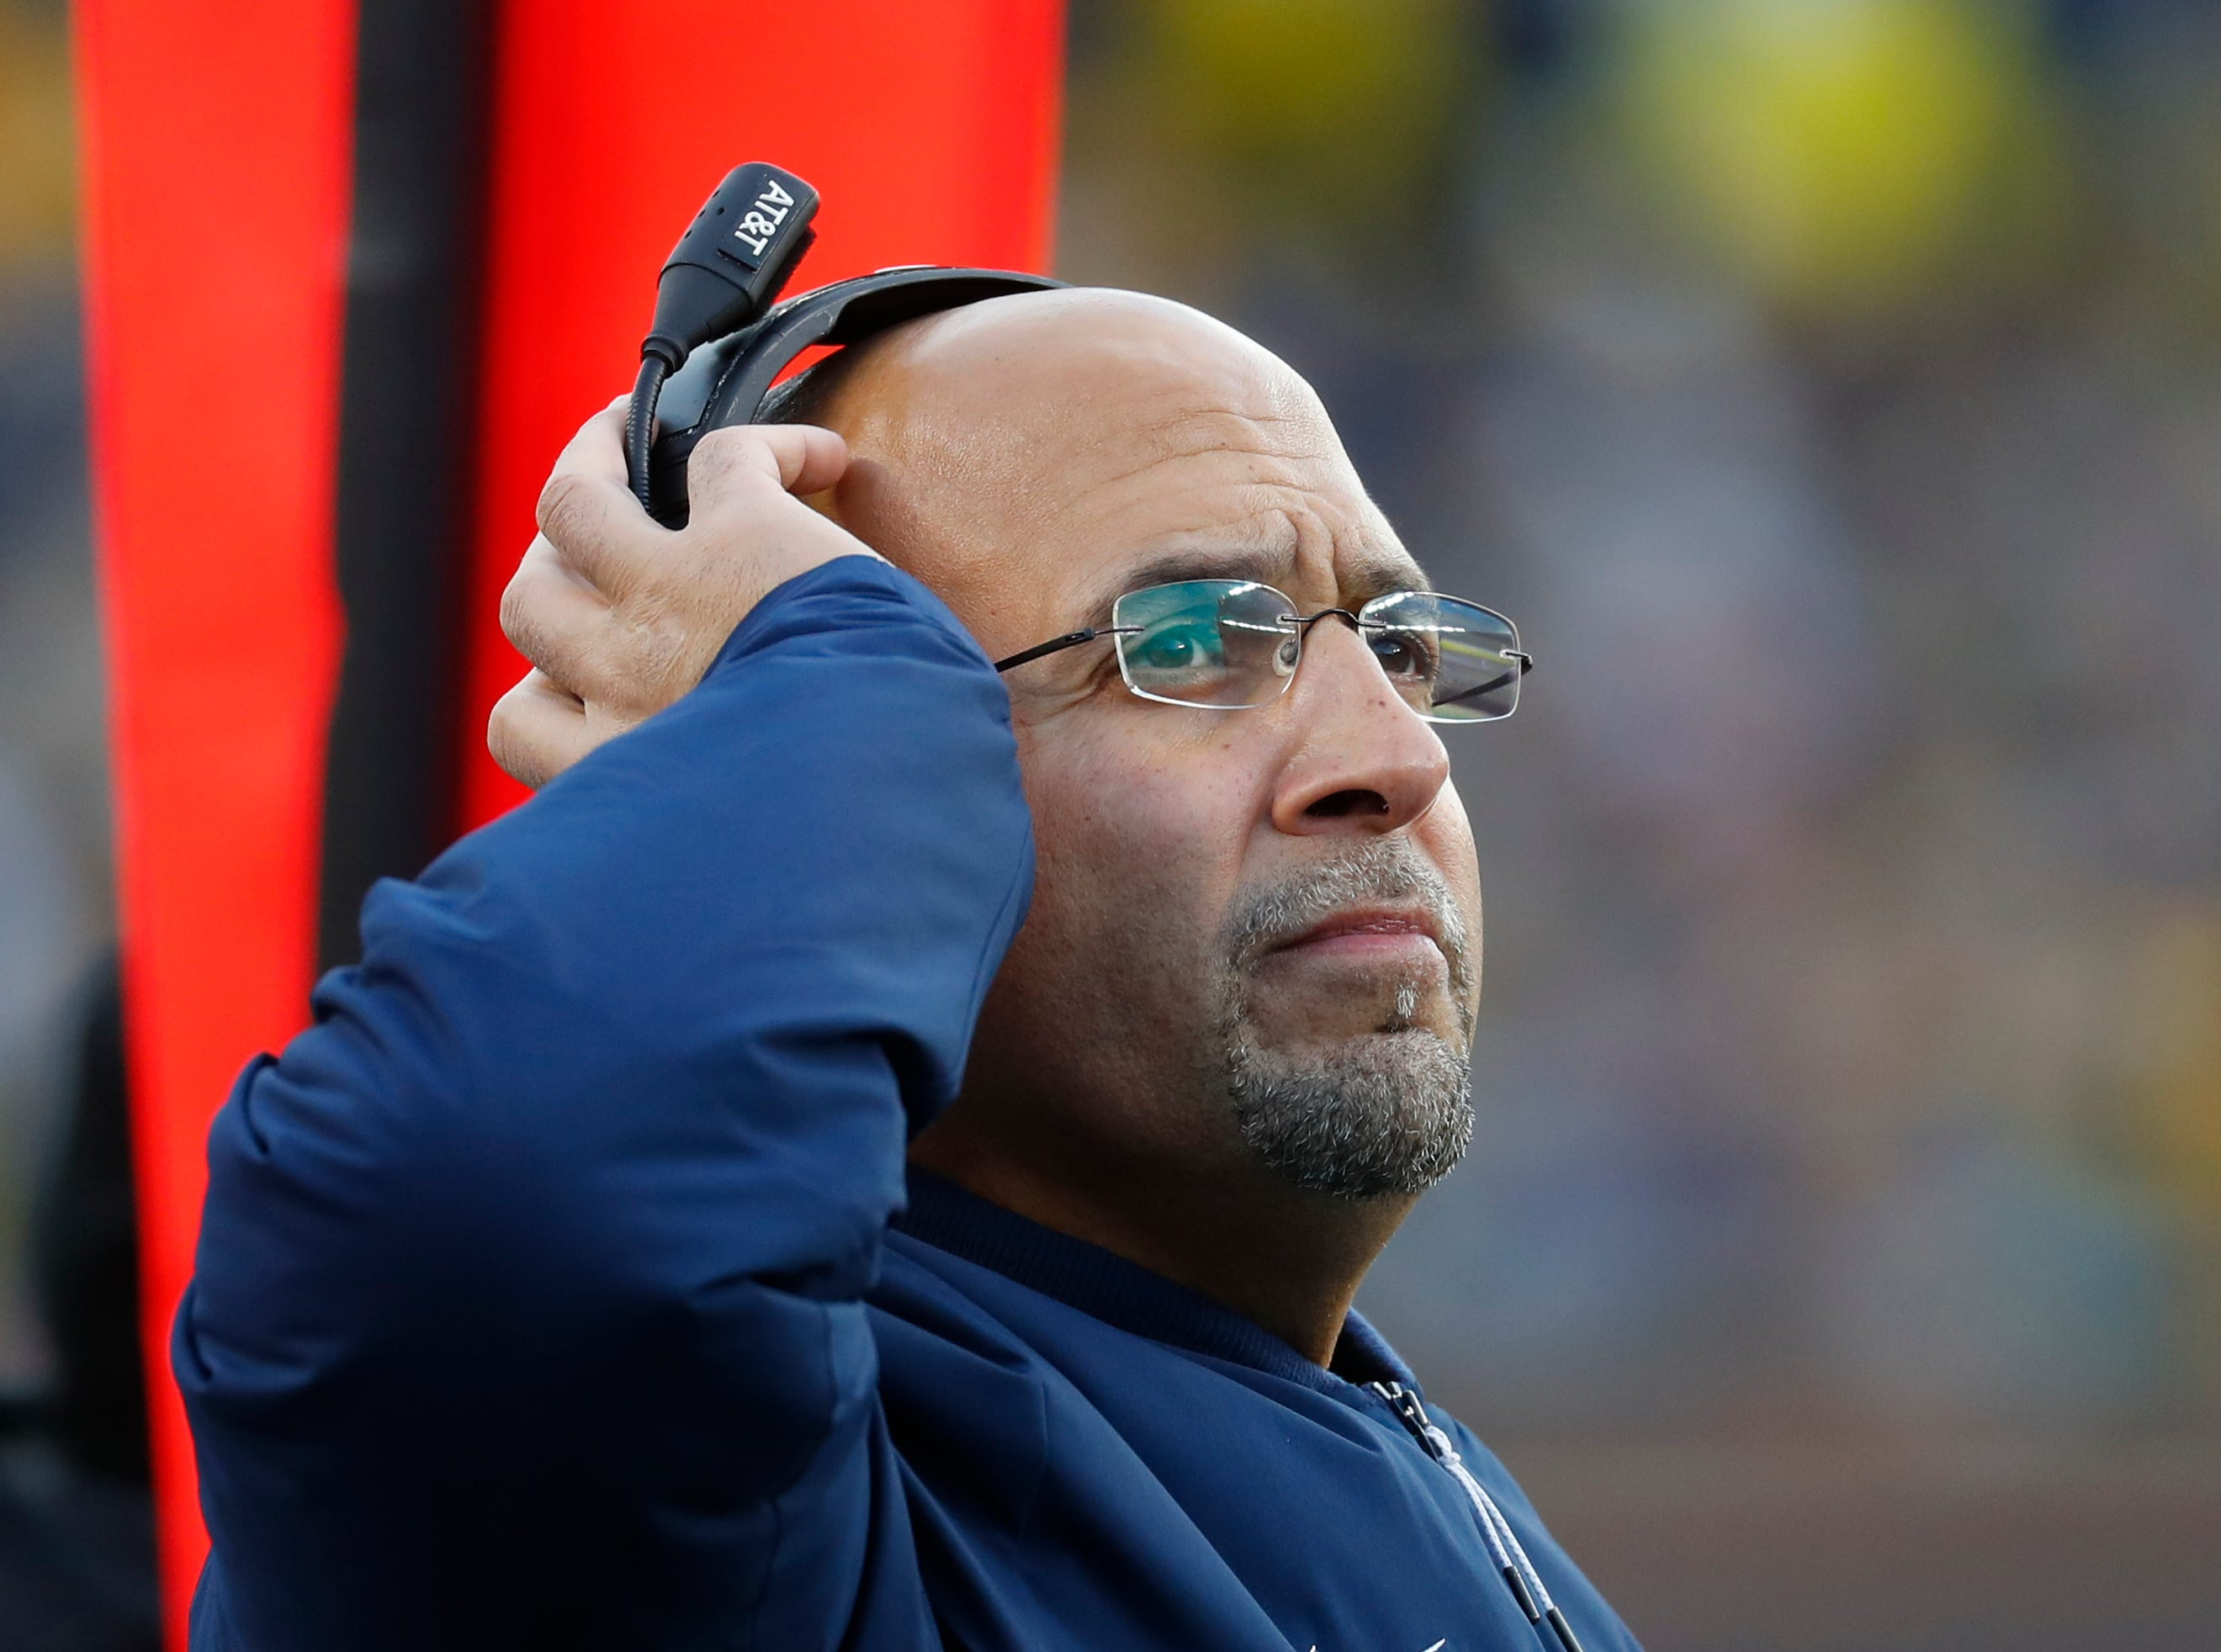 Penn State head coach James Franklin watches against Michigan in the second half of an NCAA college football game in Ann Arbor, Mich., Saturday, Nov. 3, 2018. (AP Photo/Paul Sancya)